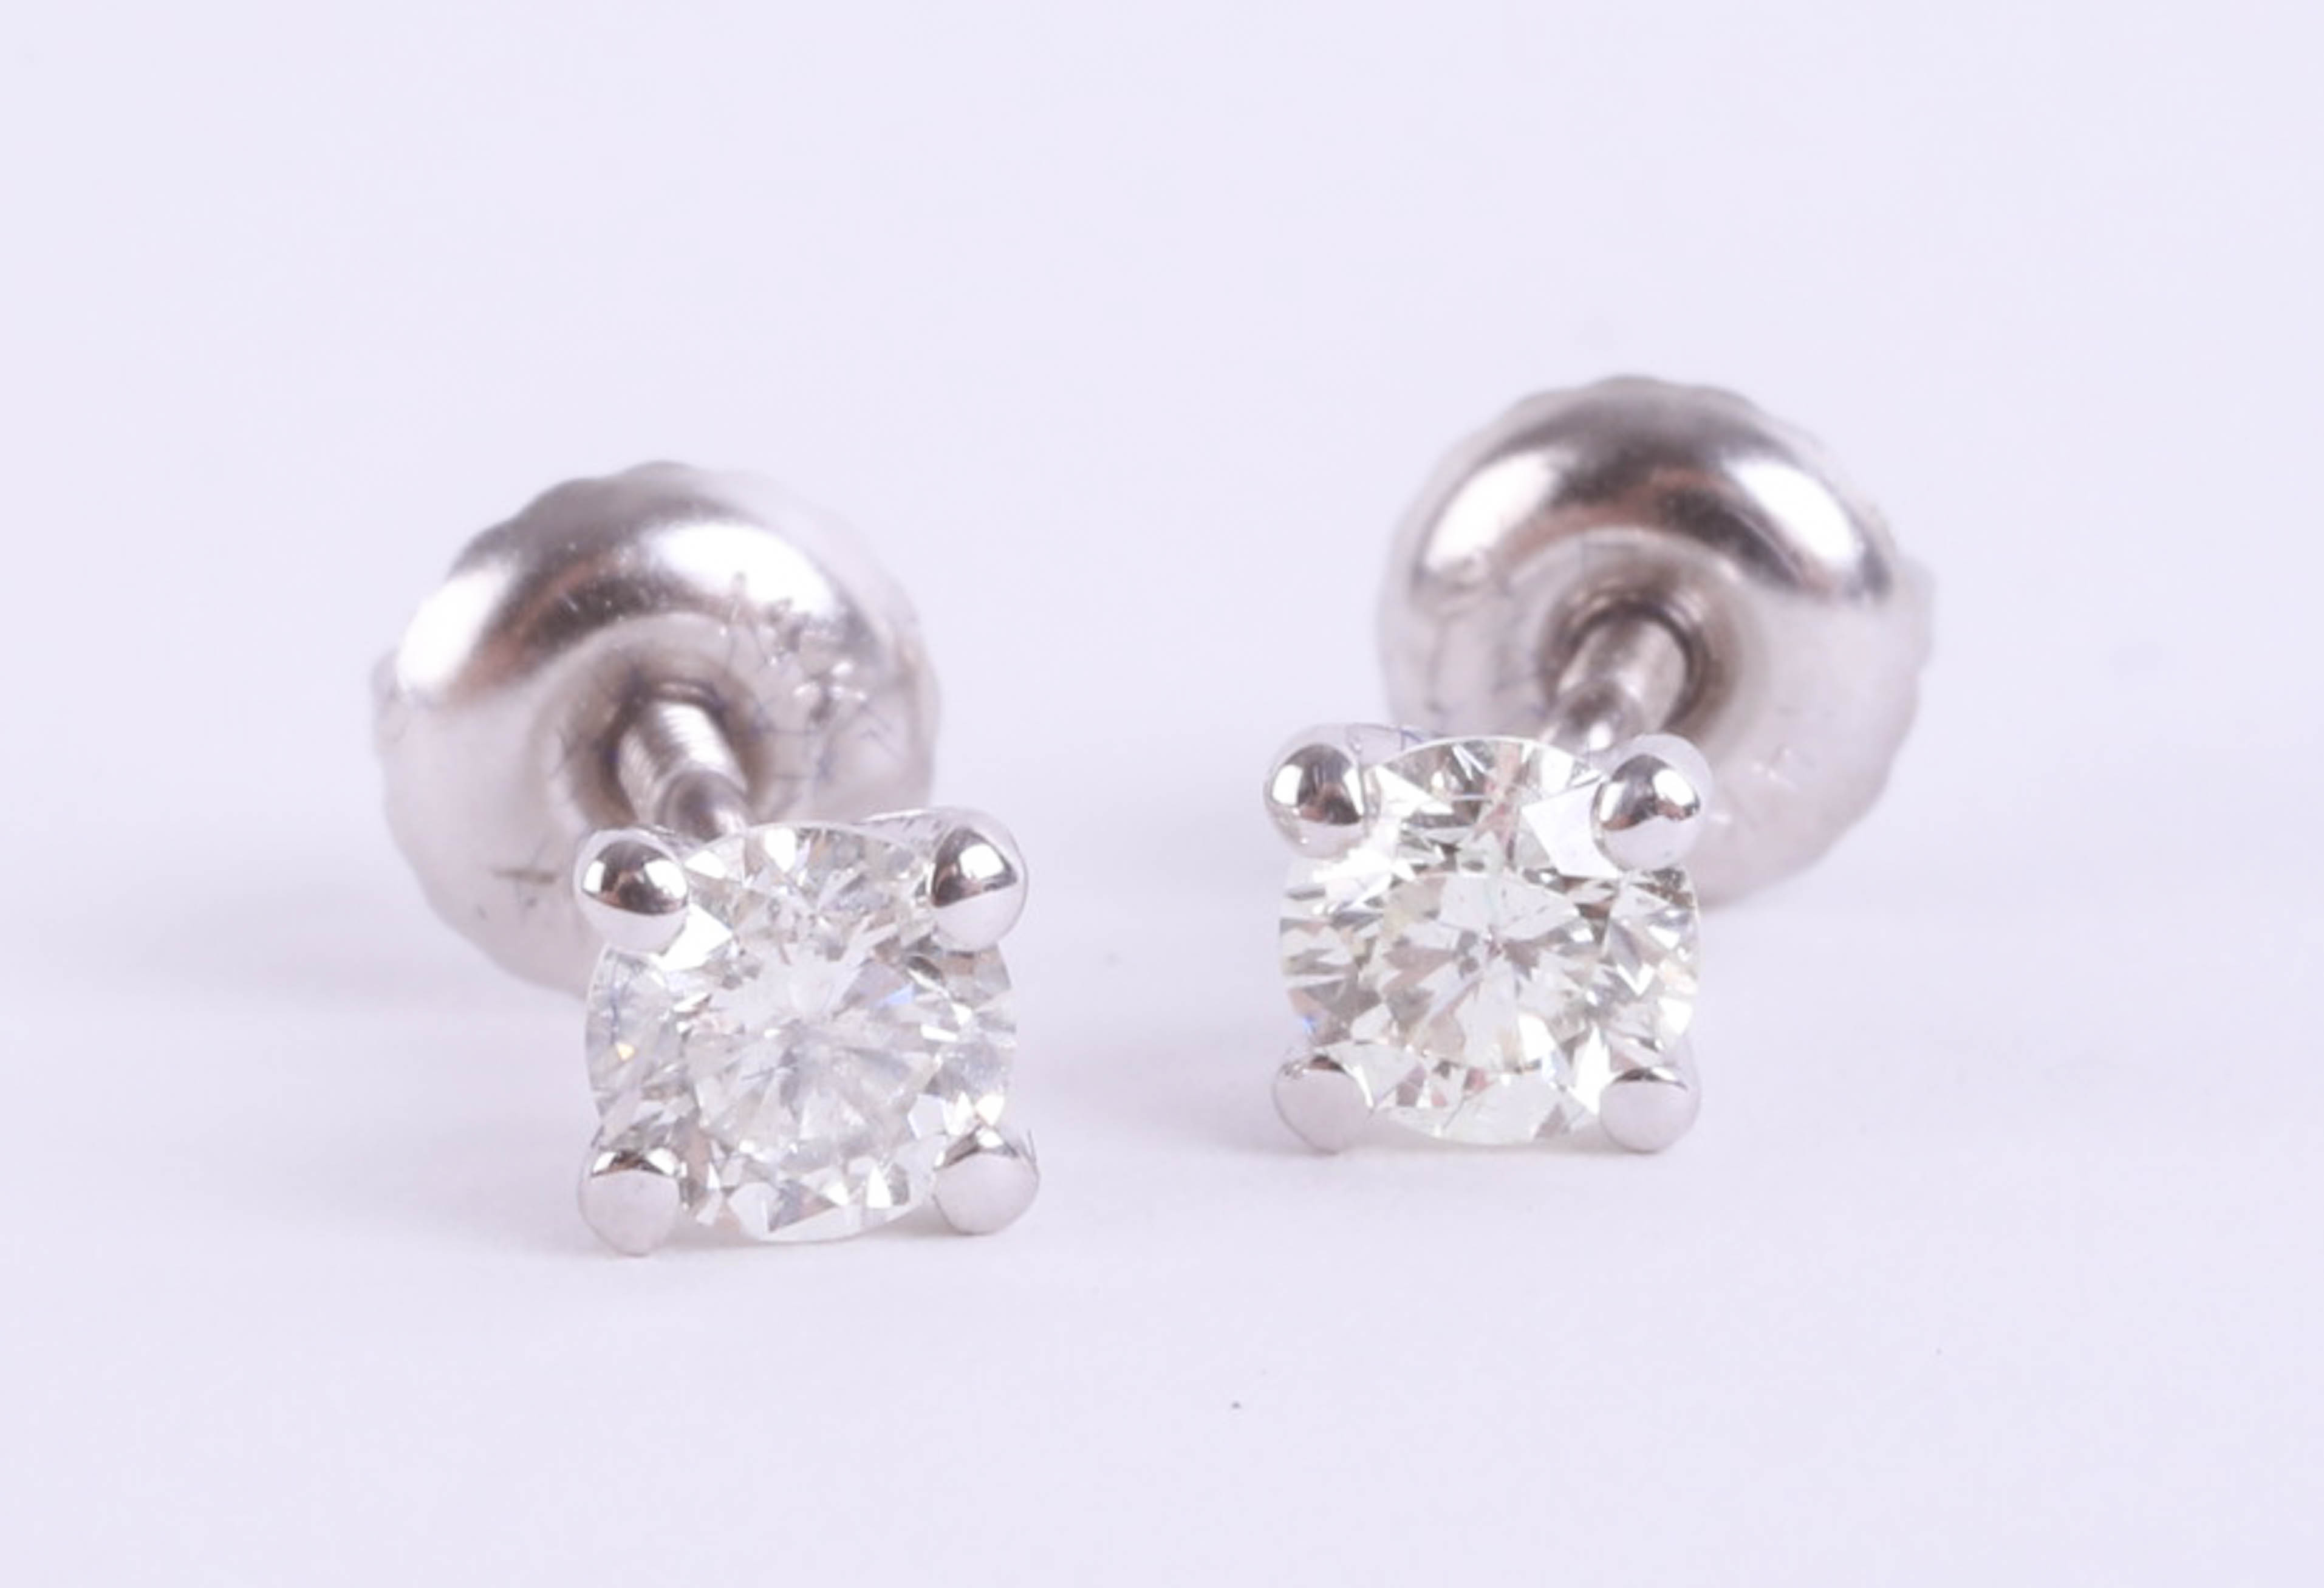 Lot 034 - A pair of 14k white gold round cut diamond stud earrings, colour D-E, clarity VS1, total carat